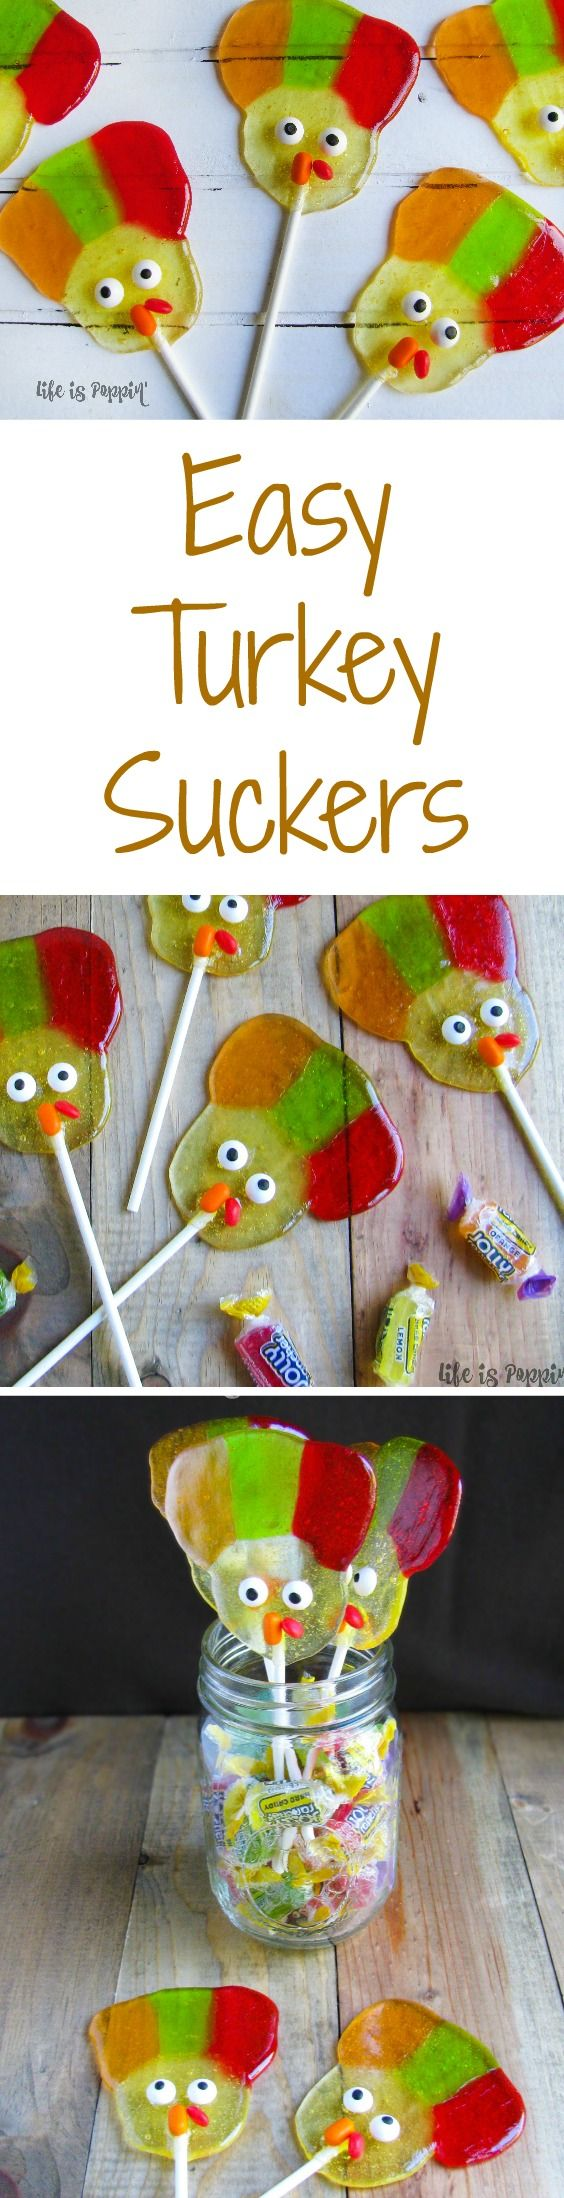 How cute are these easy turkey suckers! They are so unique and would make a great addition to your next thanksgiving party, a treat for kids to take to school or a way to surprise your coworkers.